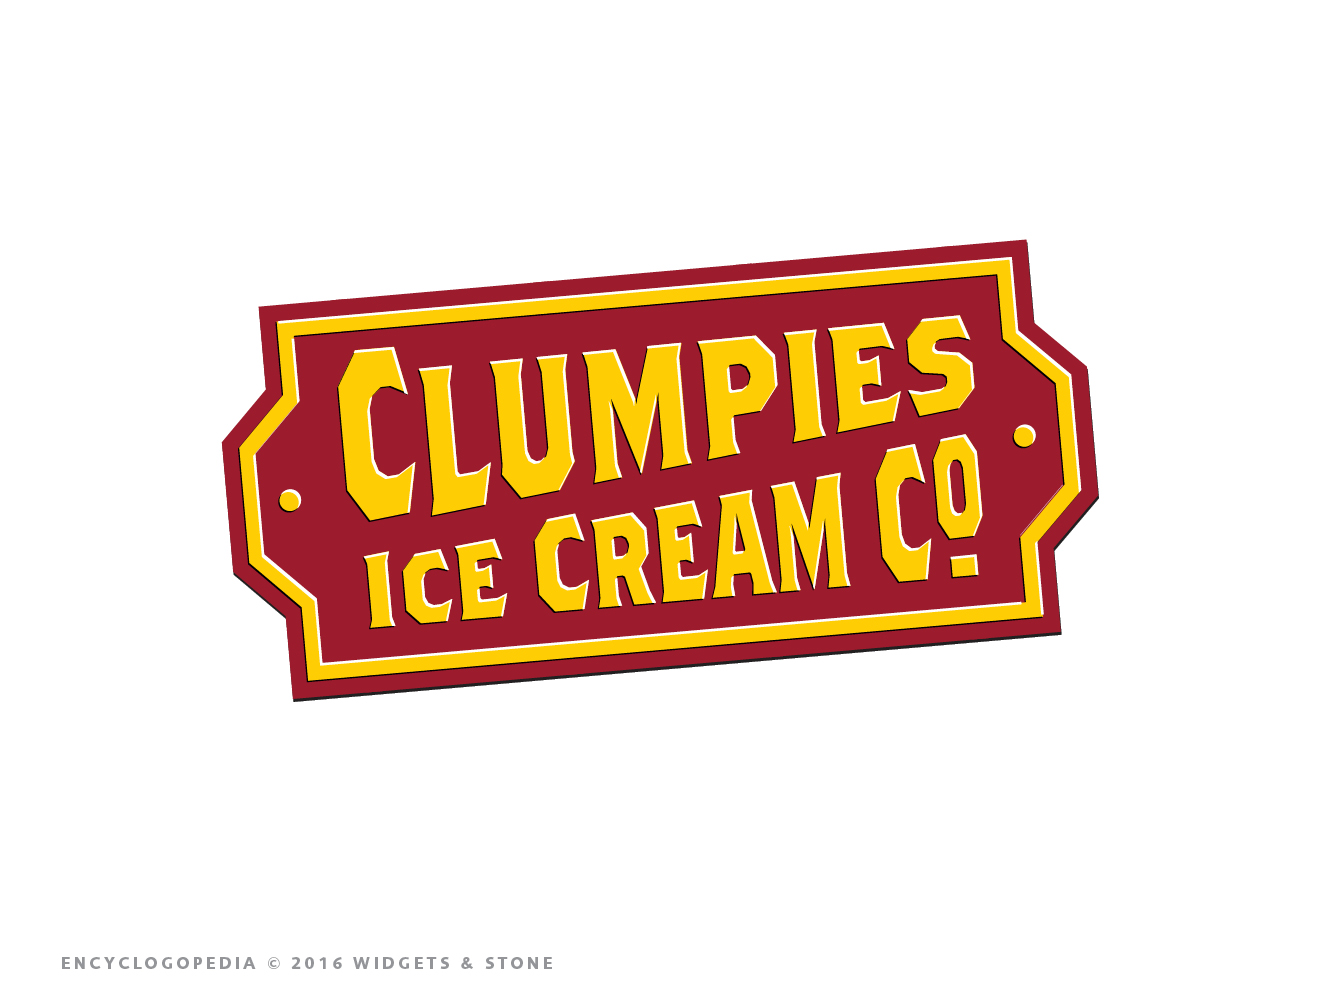 Copy of Chattanooga's Clumpies ice cream logo brand